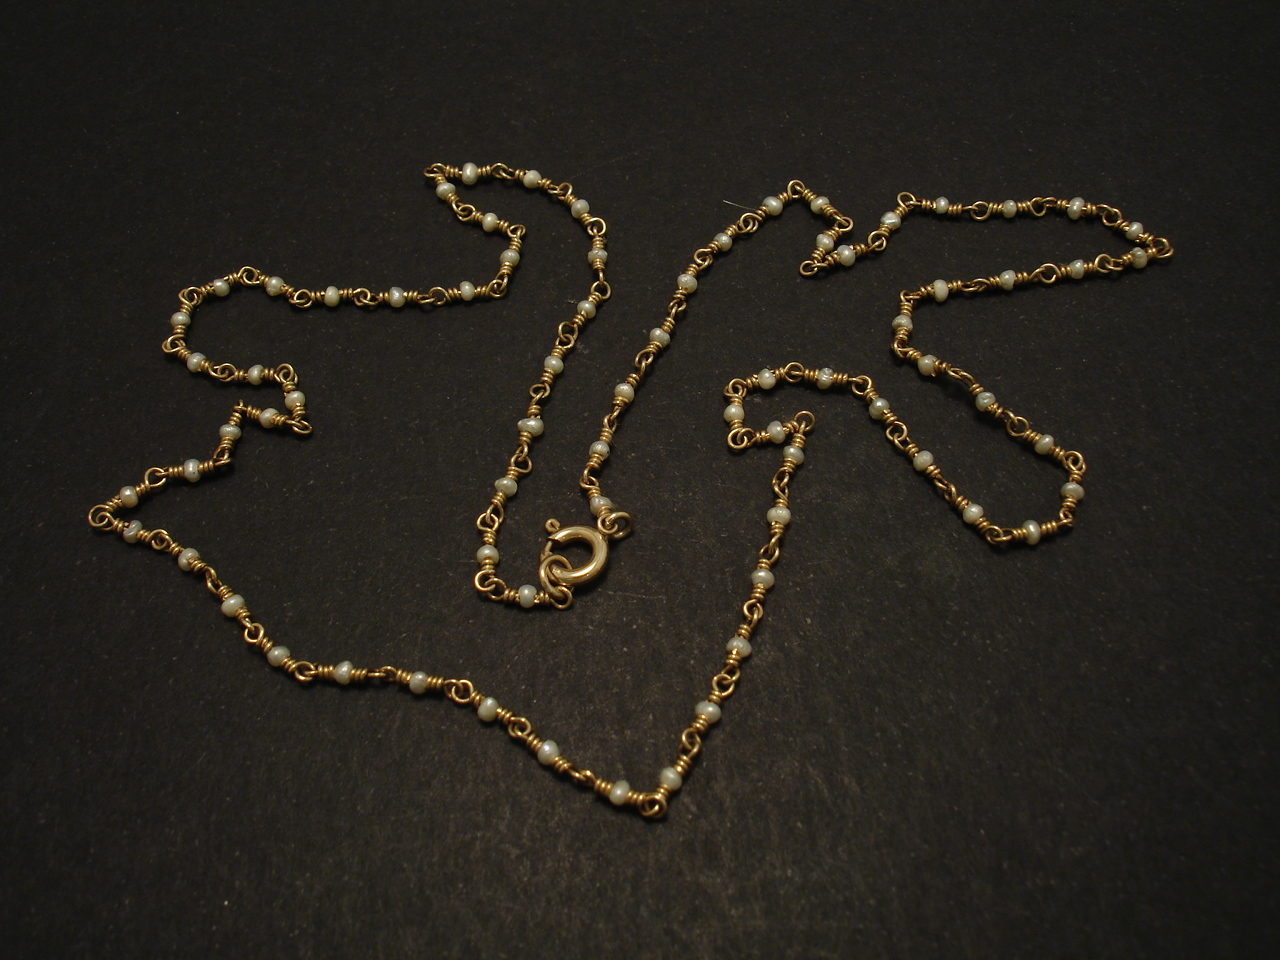 Tiniest Pearls In A Chain Necklace Of 9ct Gold